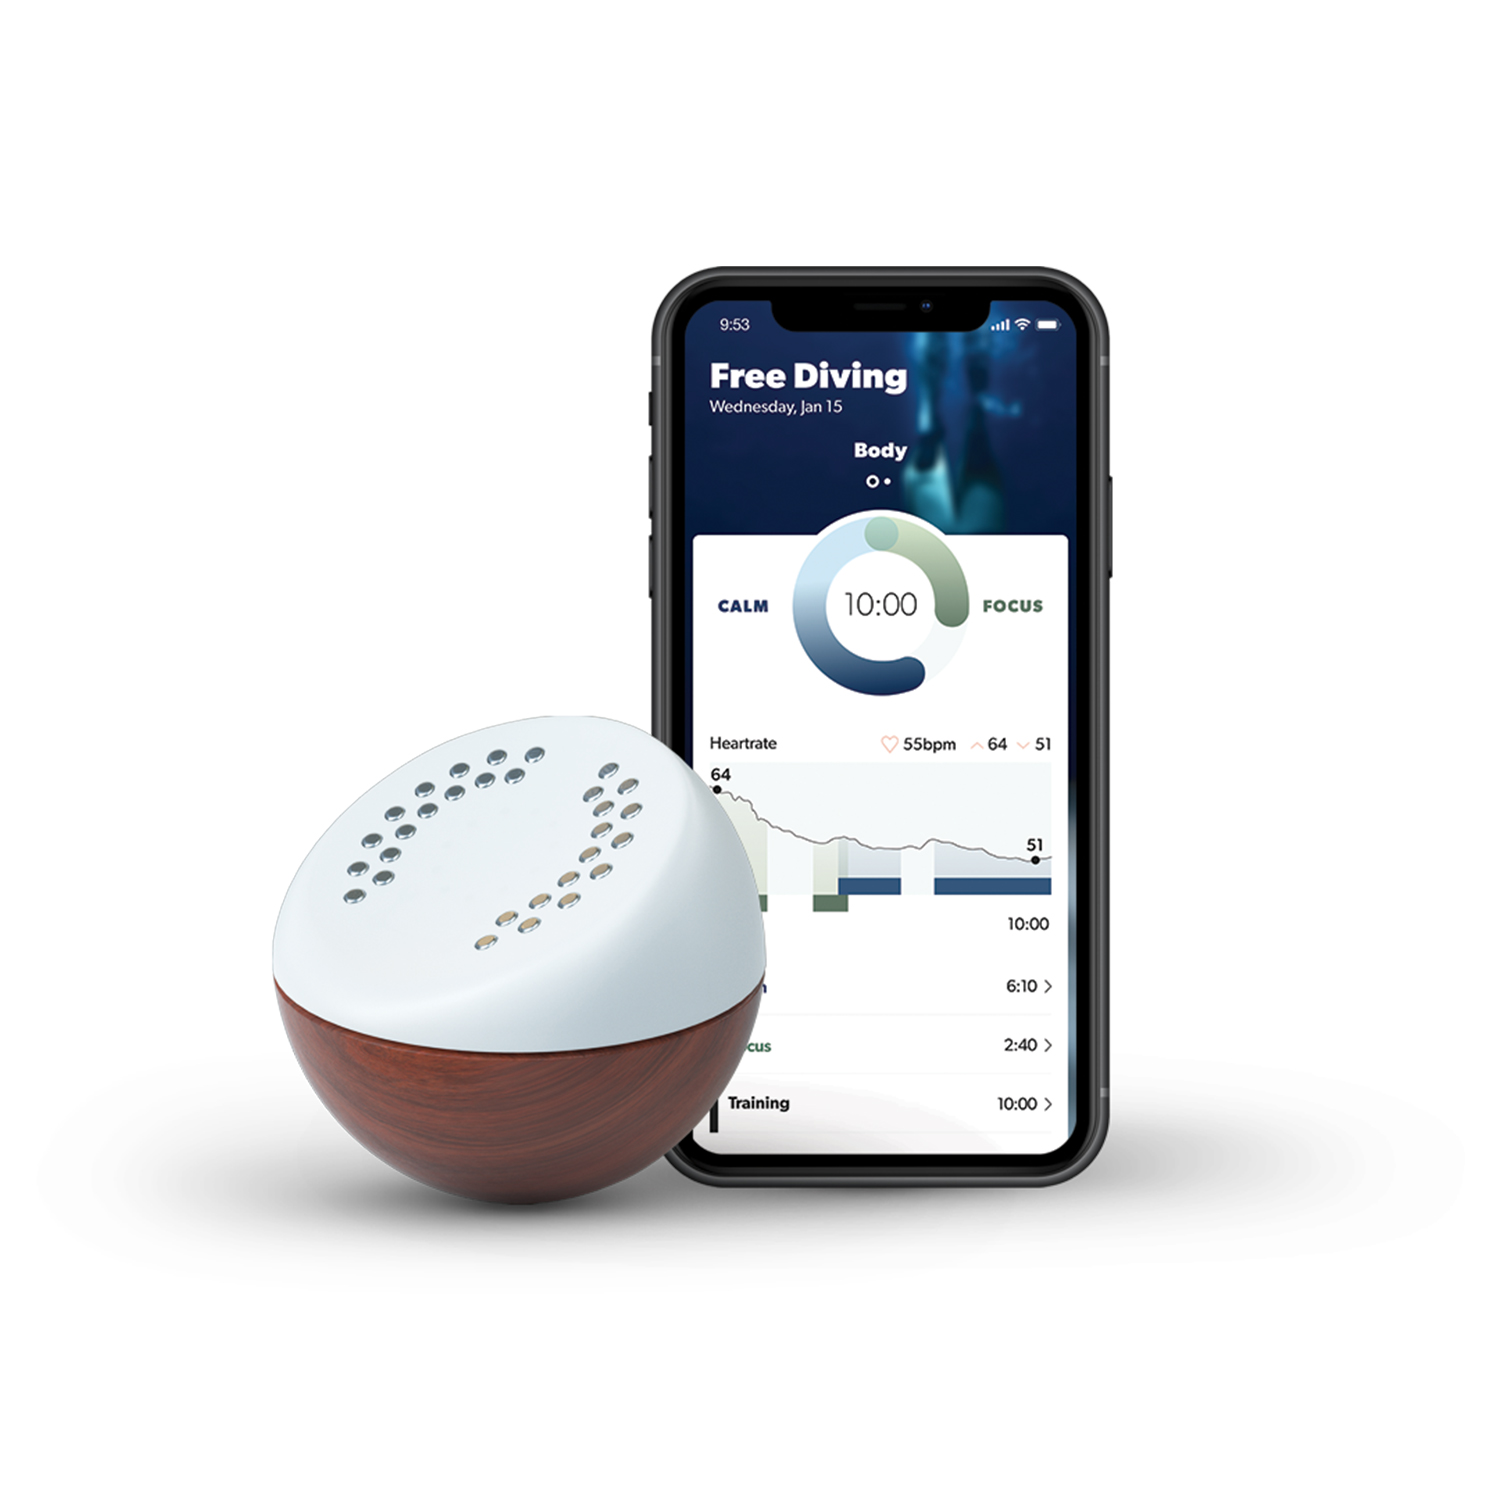 Core meditation trainer in charging dock